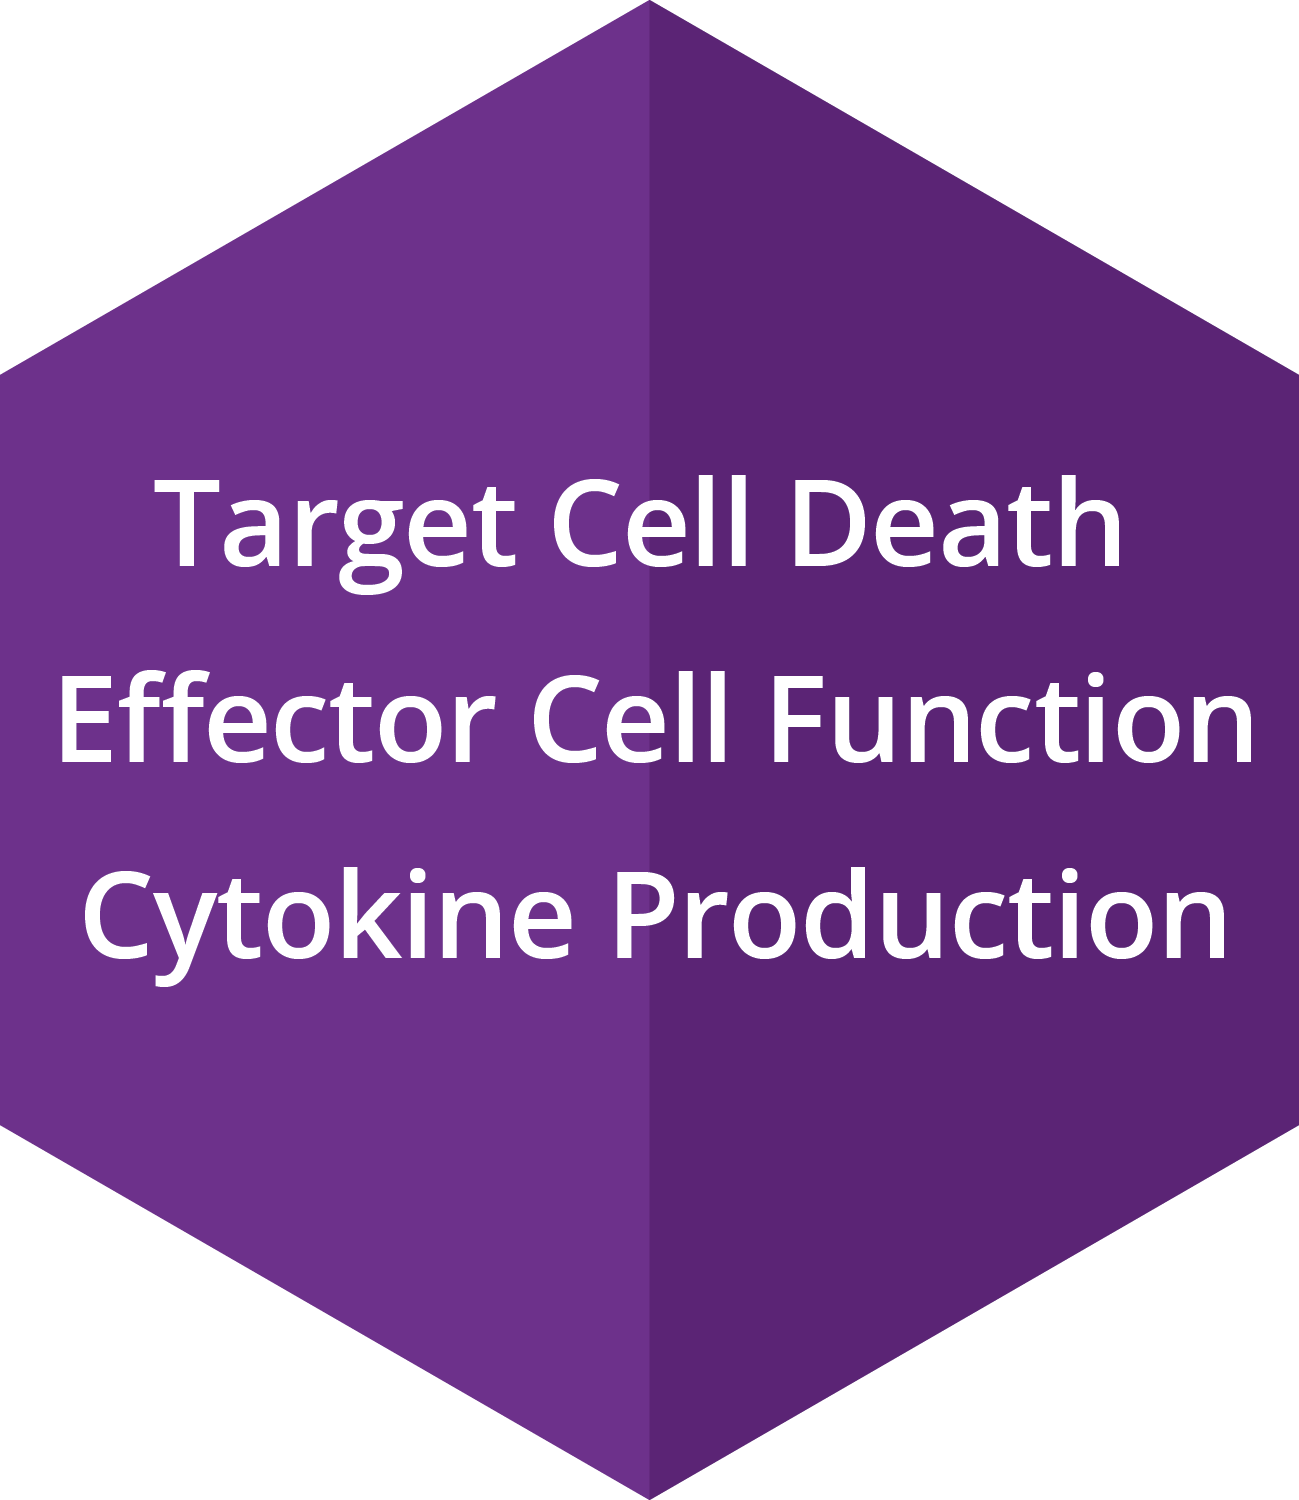 Target Cell Death, Effector Cell Function, Cytokine Production